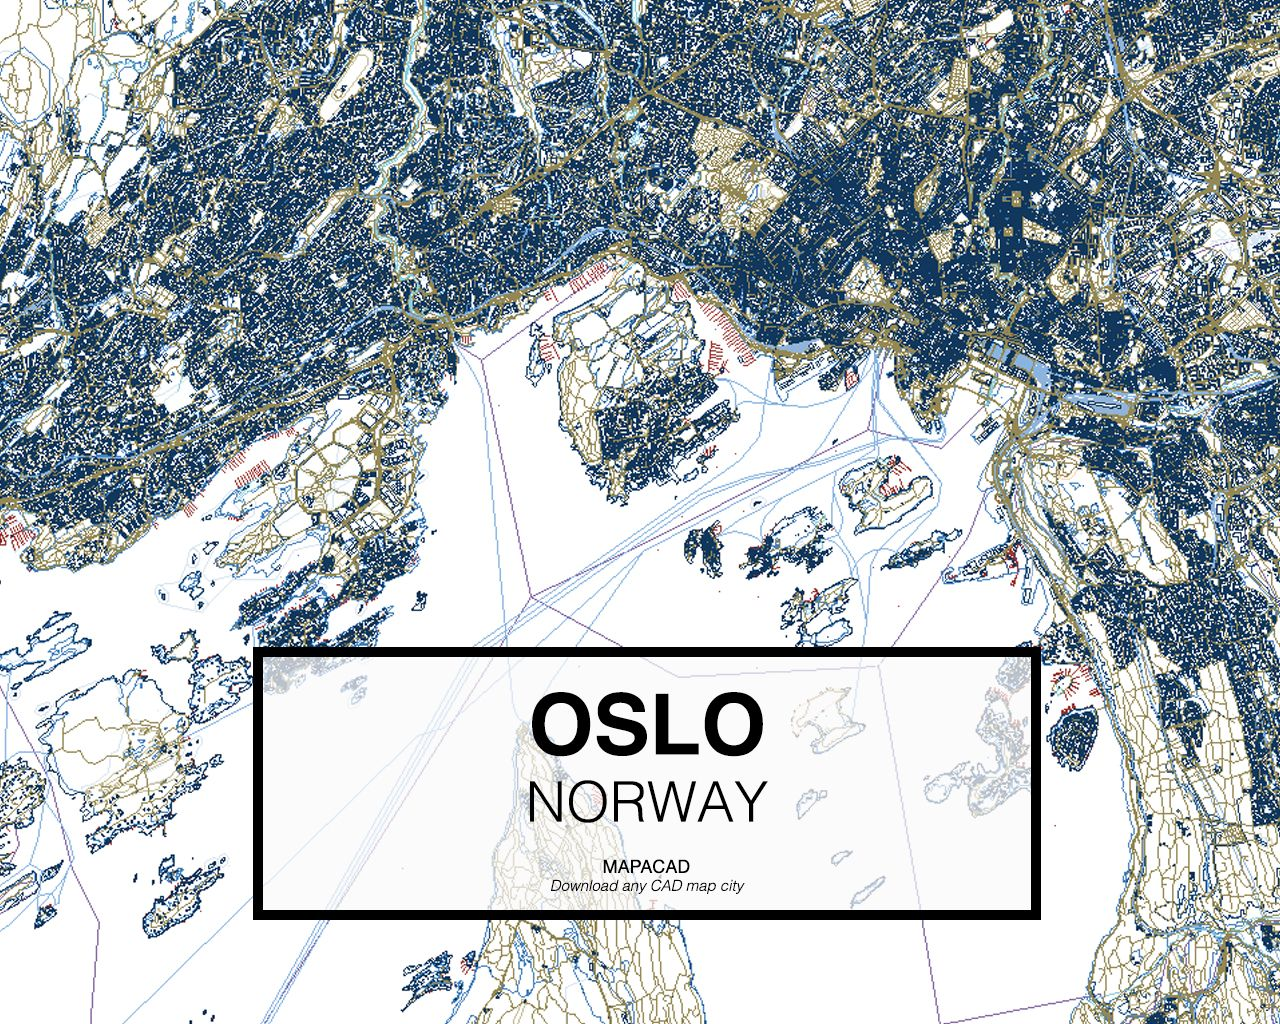 Oslo norway download cad map city in dwg ready to use in autocad oslo norway download cad map city in dwg ready to use in autocad sciox Gallery